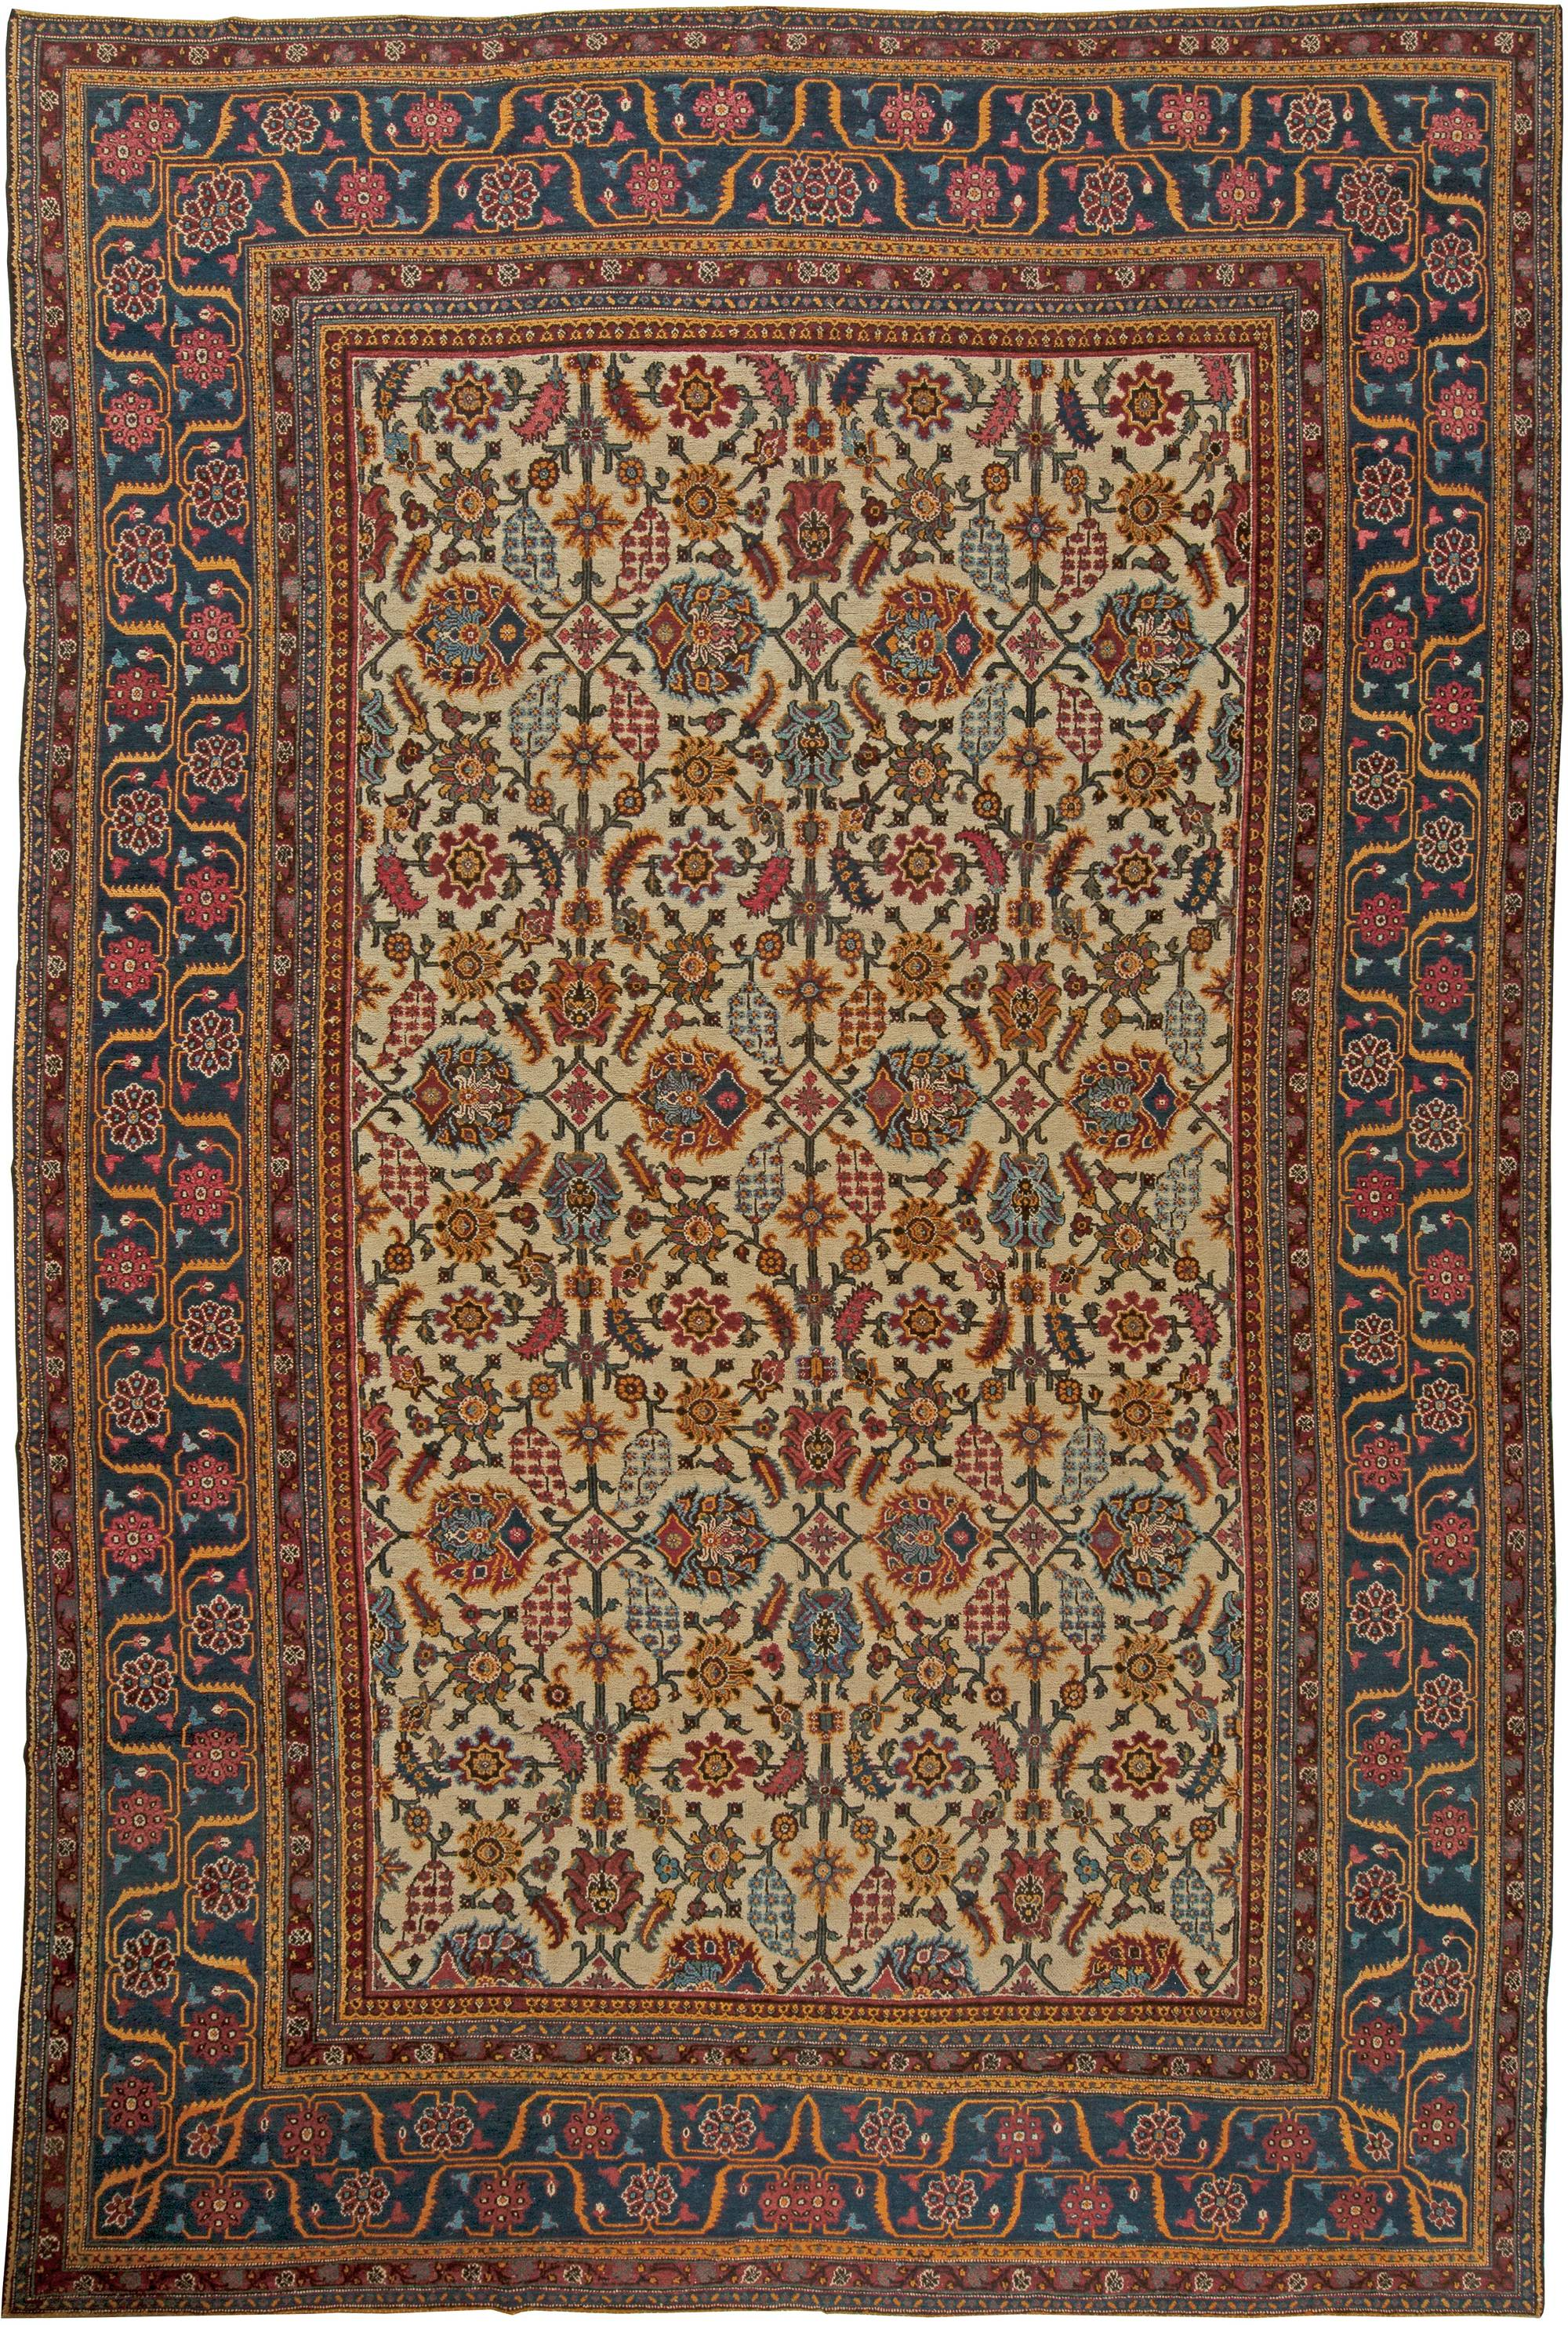 north indian rugs carpets for sale antique oriental. Black Bedroom Furniture Sets. Home Design Ideas